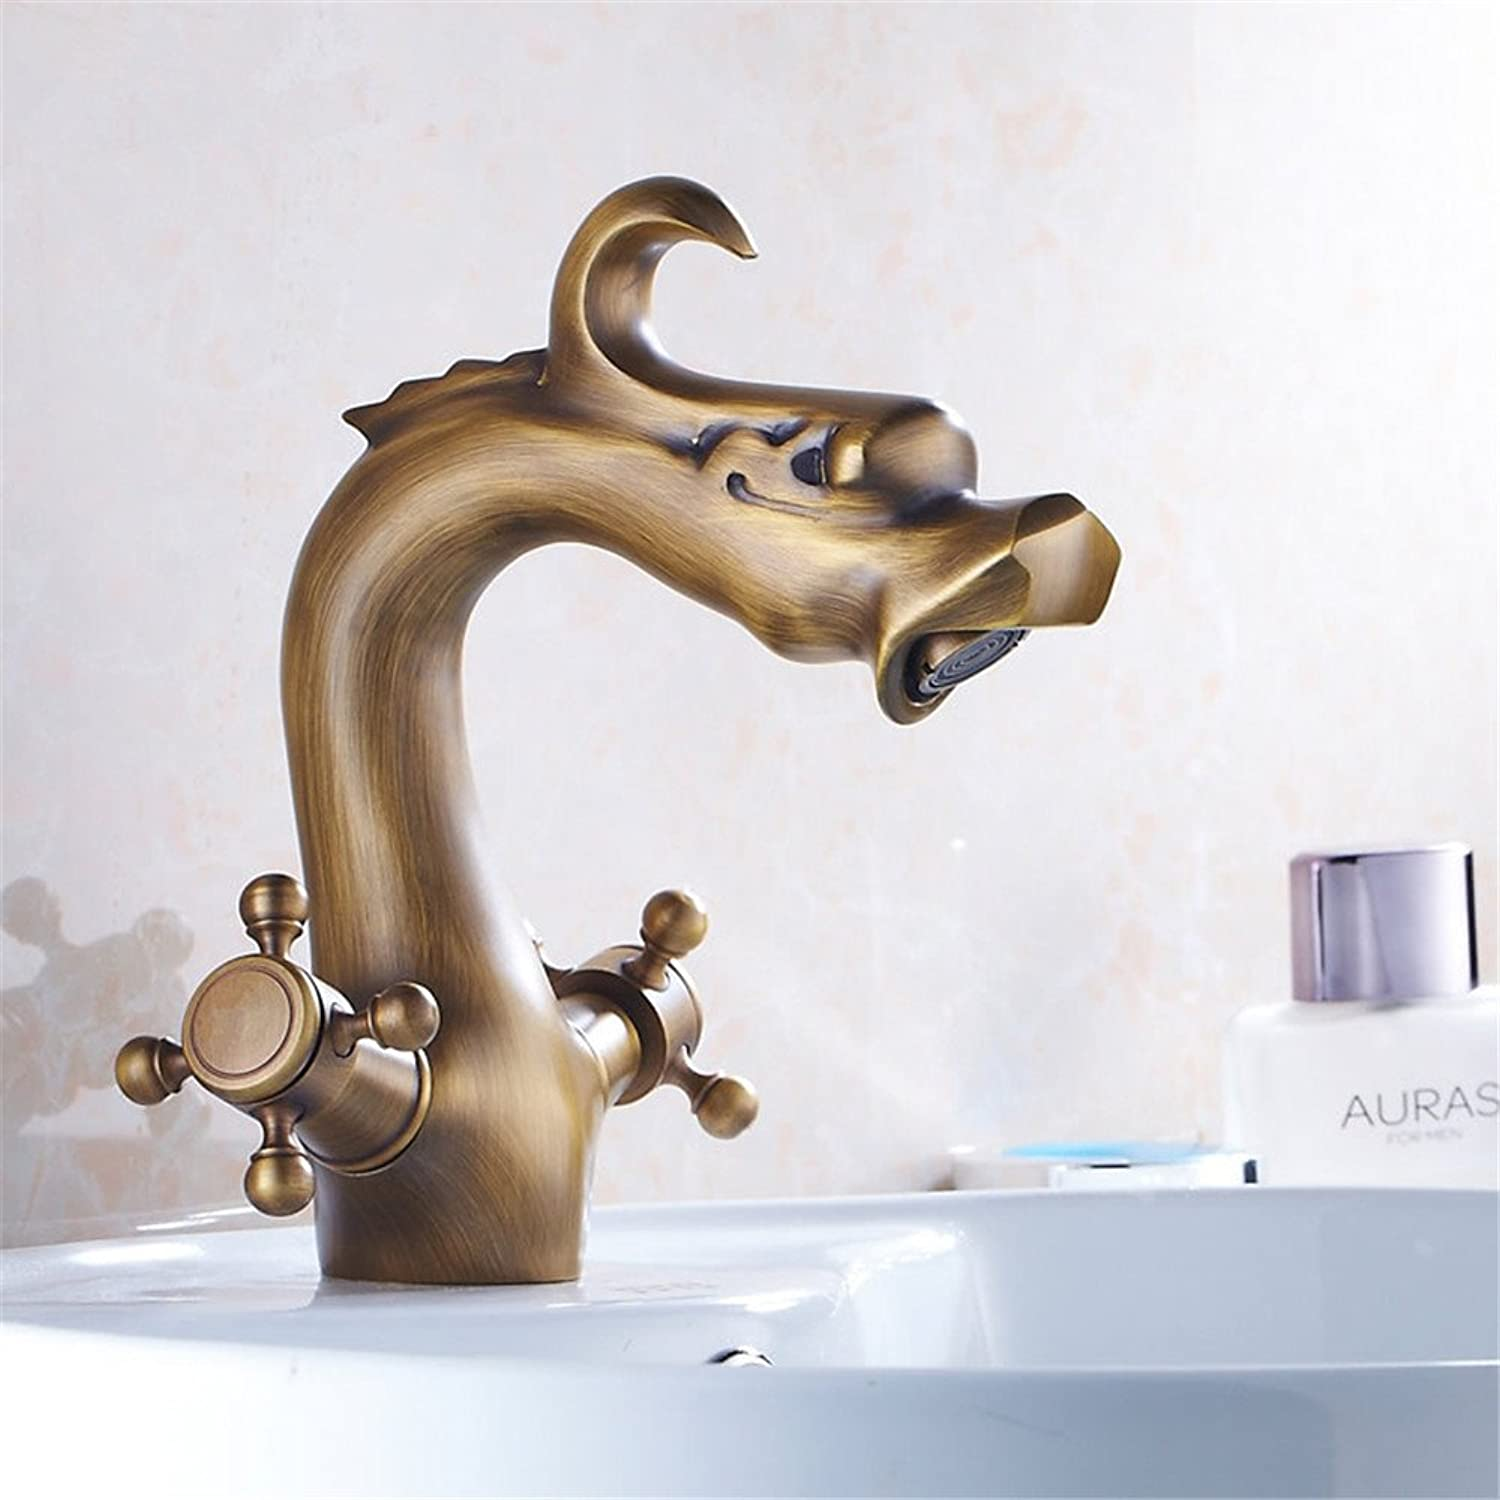 All copper antique continental cold water taps plus high single hole basin mixer console antique fittings,